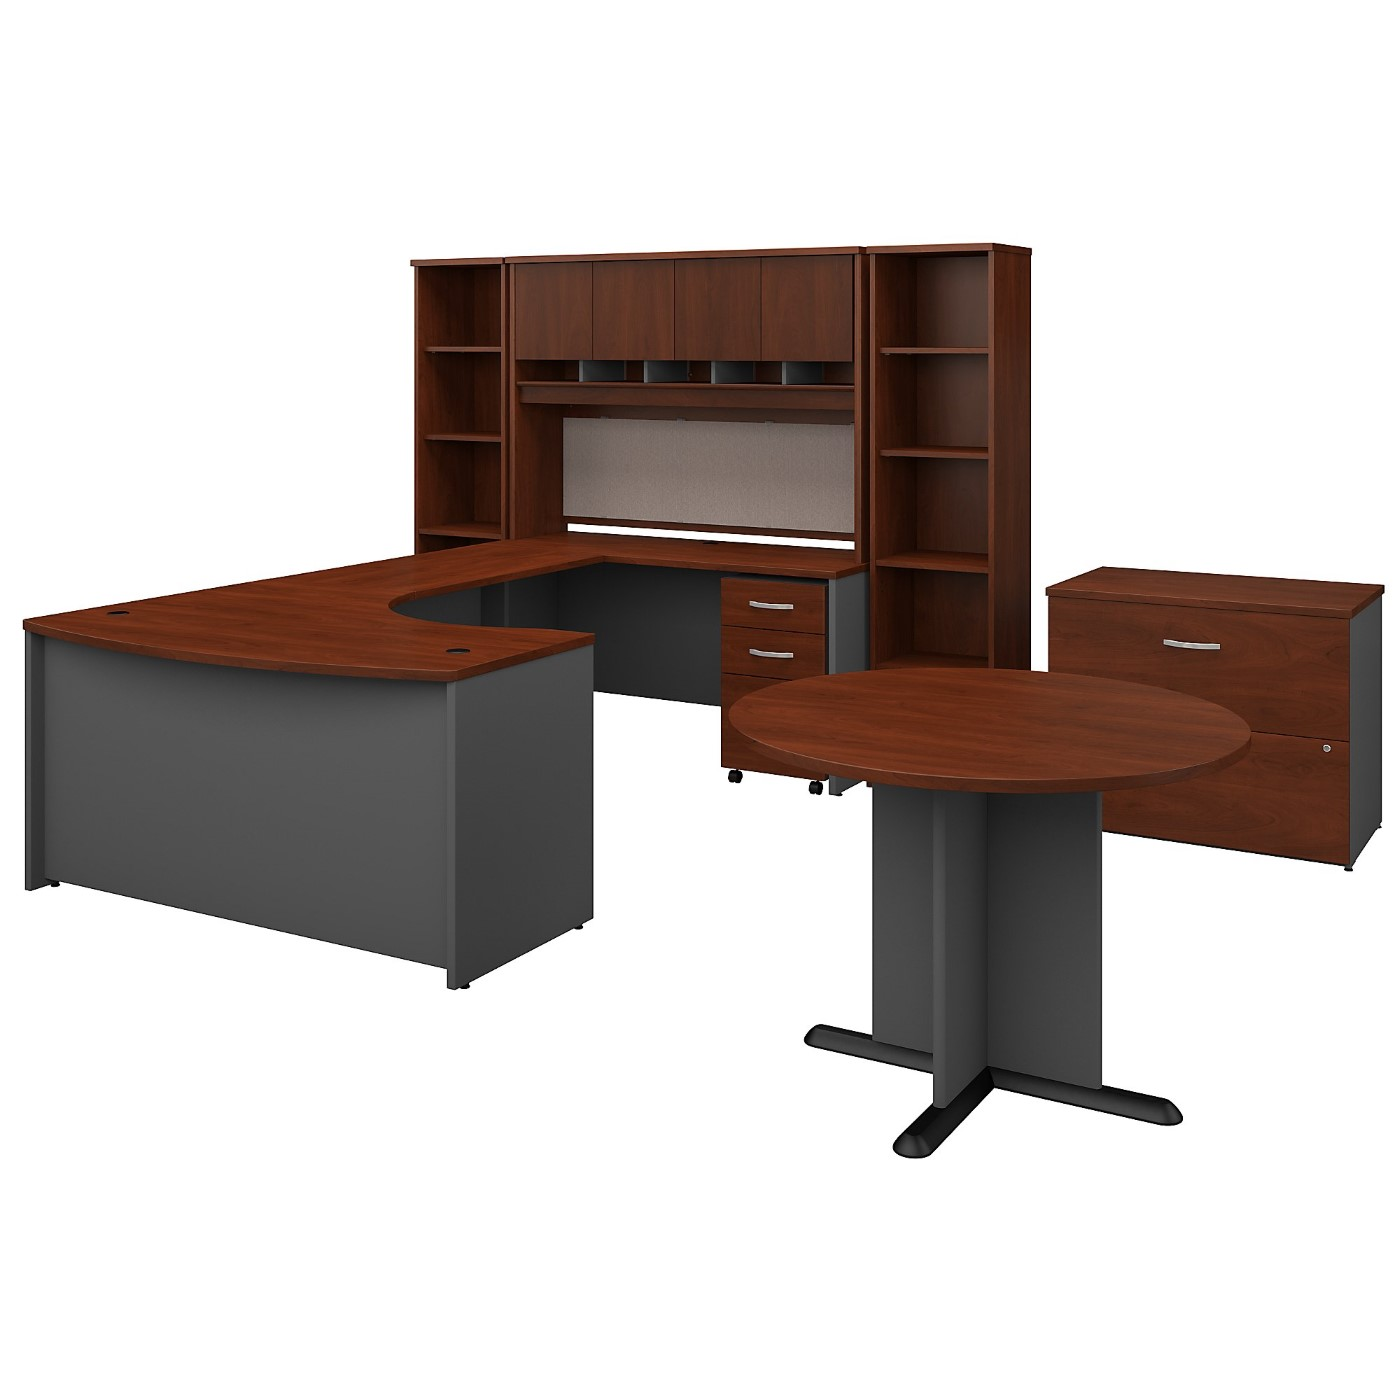 BUSH BUSINESS FURNITURE SERIES C 60W RIGHT HANDED BOW FRONT U SHAPED DESK WITH STORAGE AND CONFERENCE TABLE. FREE SHIPPING